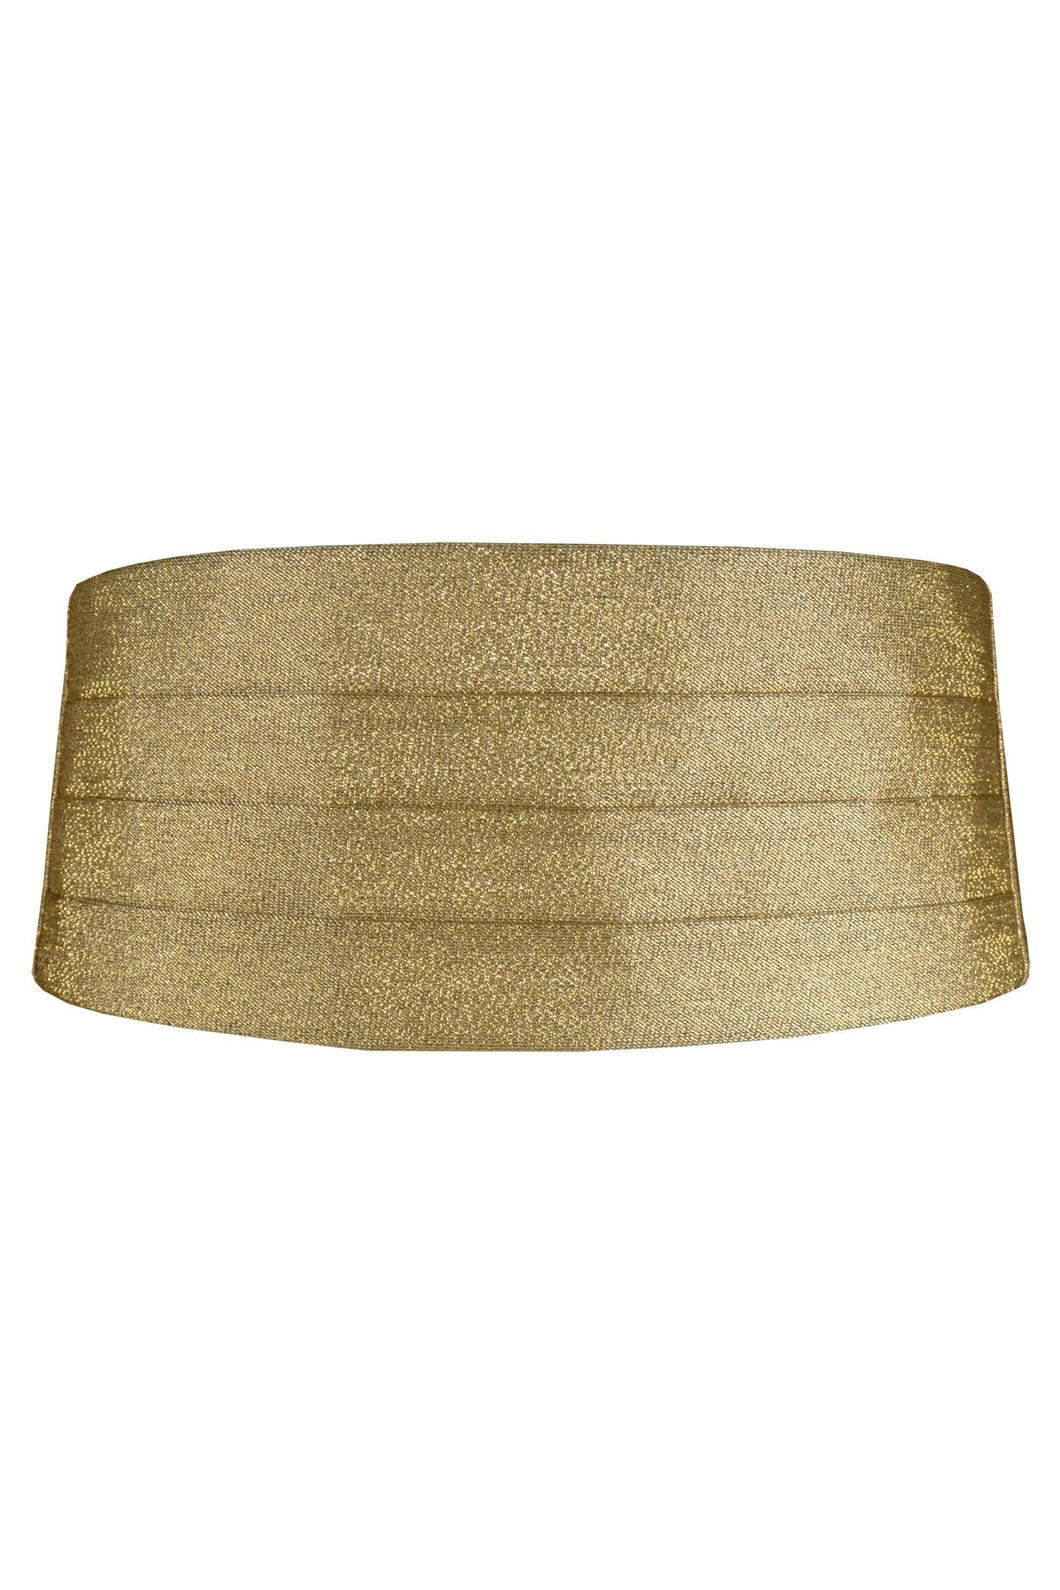 Gold Metallic Cummerbund